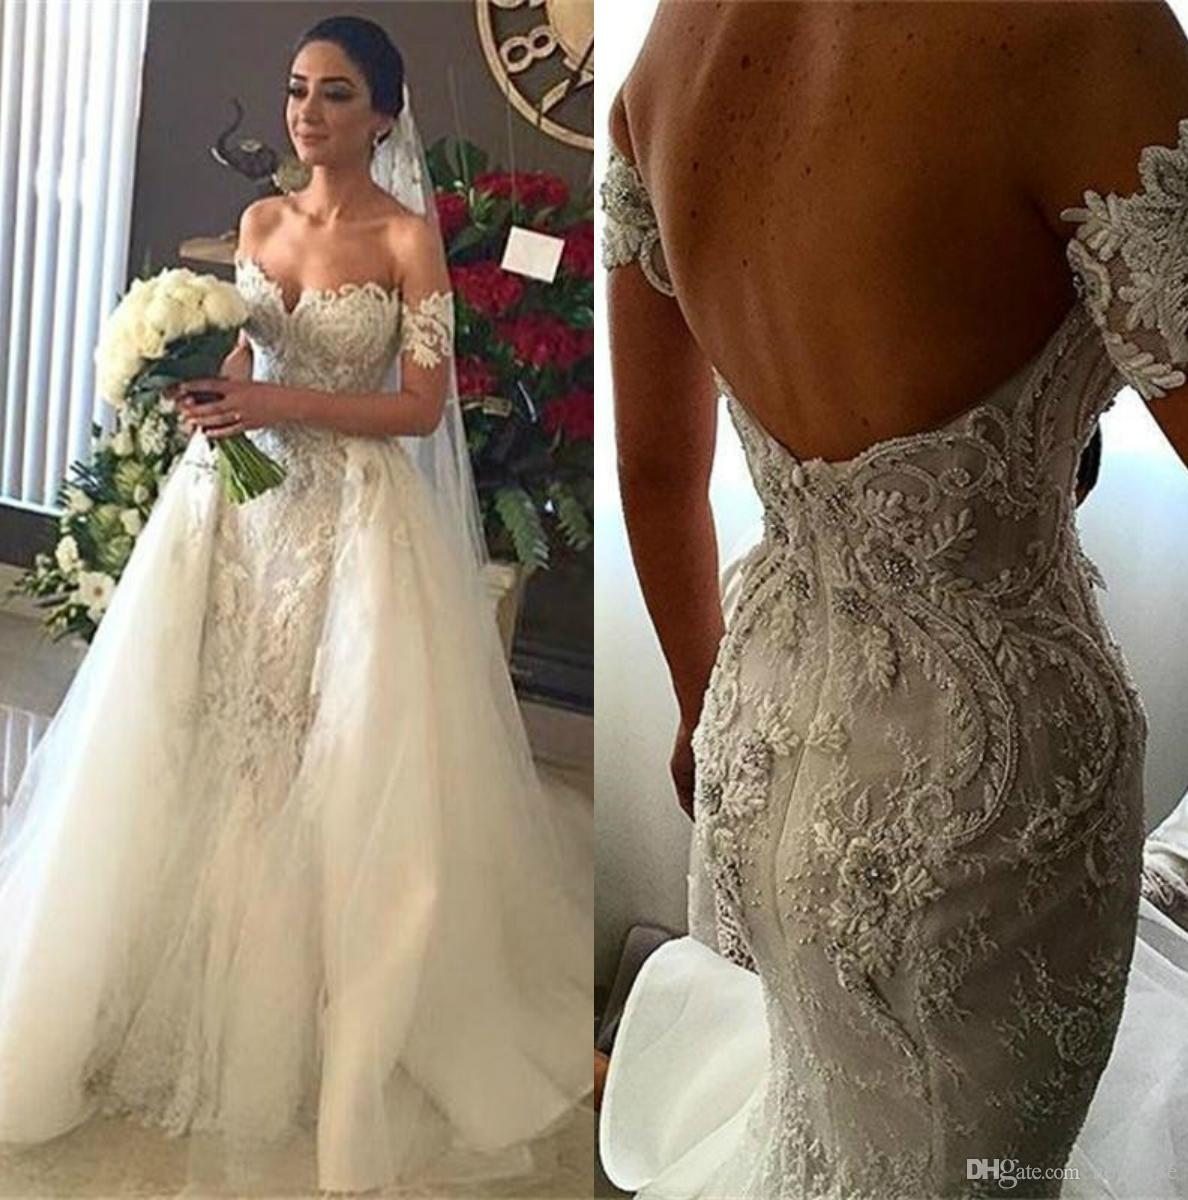 425bd4b4b89 Discount Sexy Lace Wedding Dresses With Removable Tulle Overskirt Mermaid  Backless Off The Shoulder Bridal Gowns Long Train Best Dresses Online Bridal  Gown ...